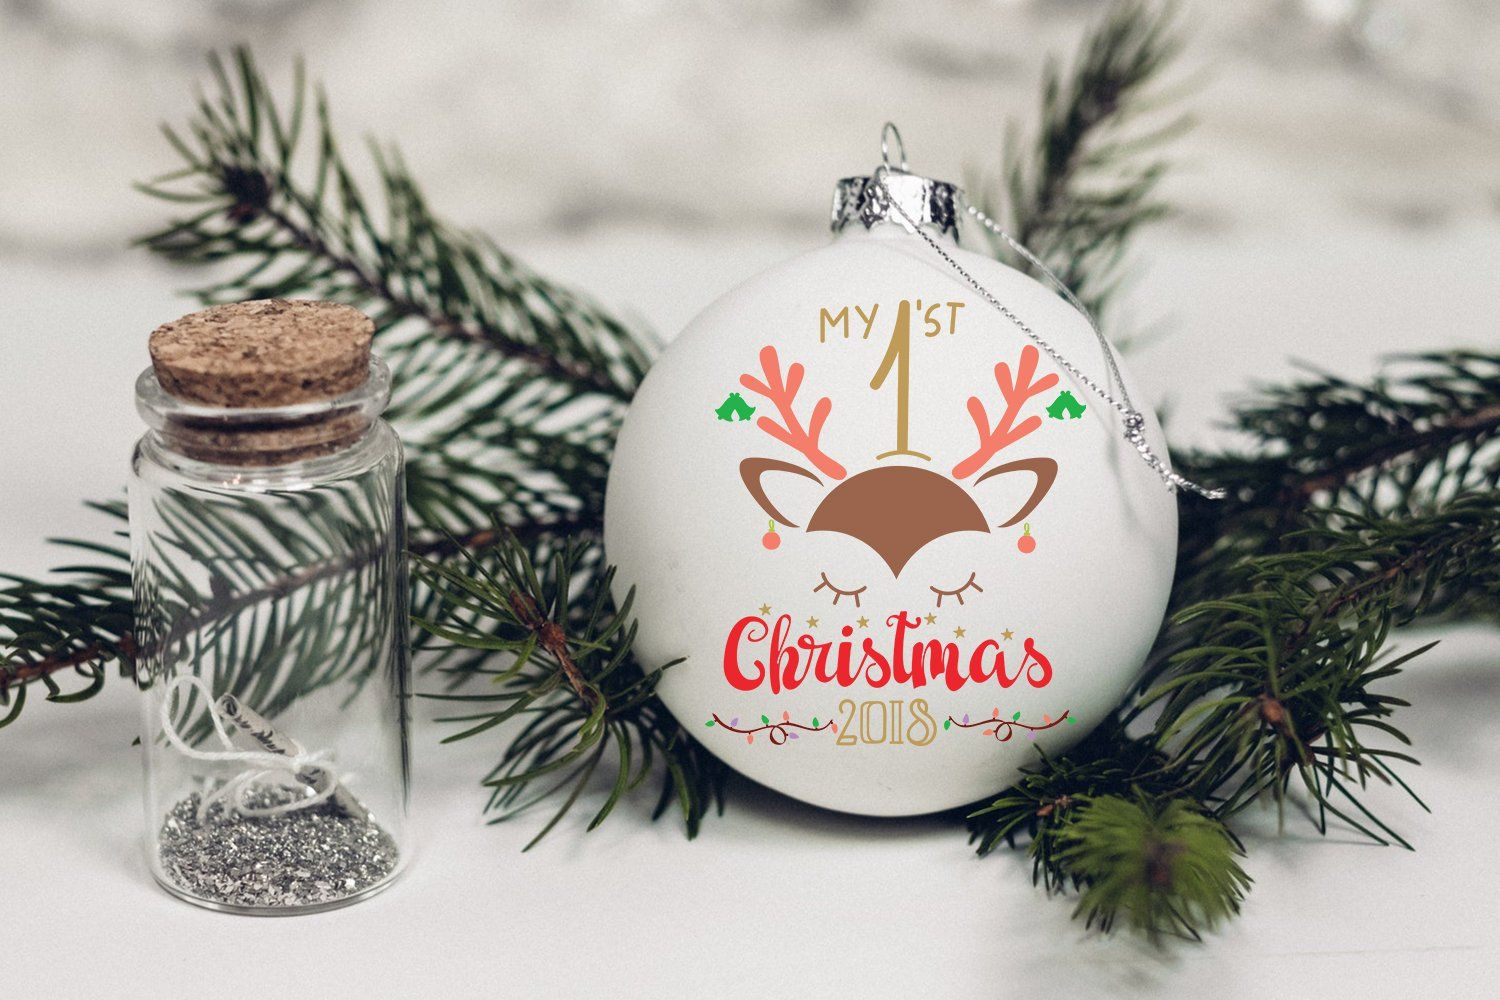 Cricut Projects Christmas Ornaments Glass Ball Cricut Projects Christmas Dollar St Christmas Crafts For Gifts Baby Christmas Crafts First Christmas Ornament